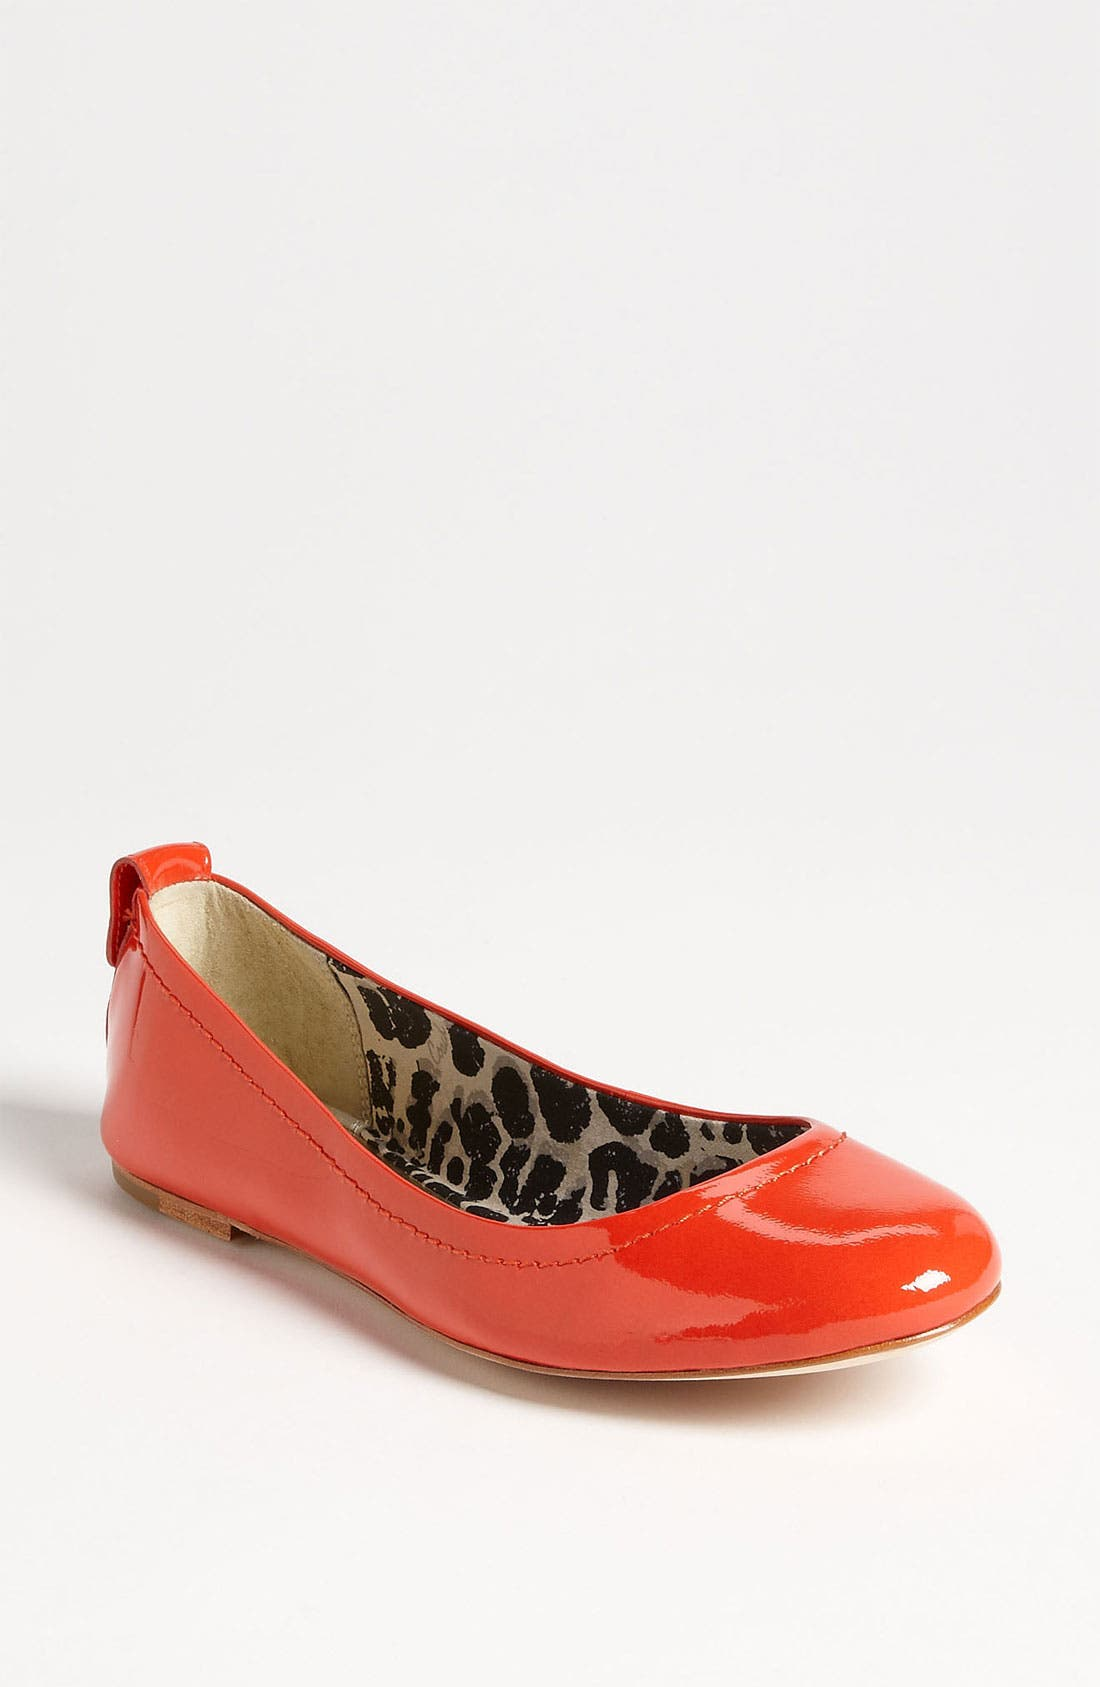 Alternate Image 1 Selected - COACH 'Anora' Flat